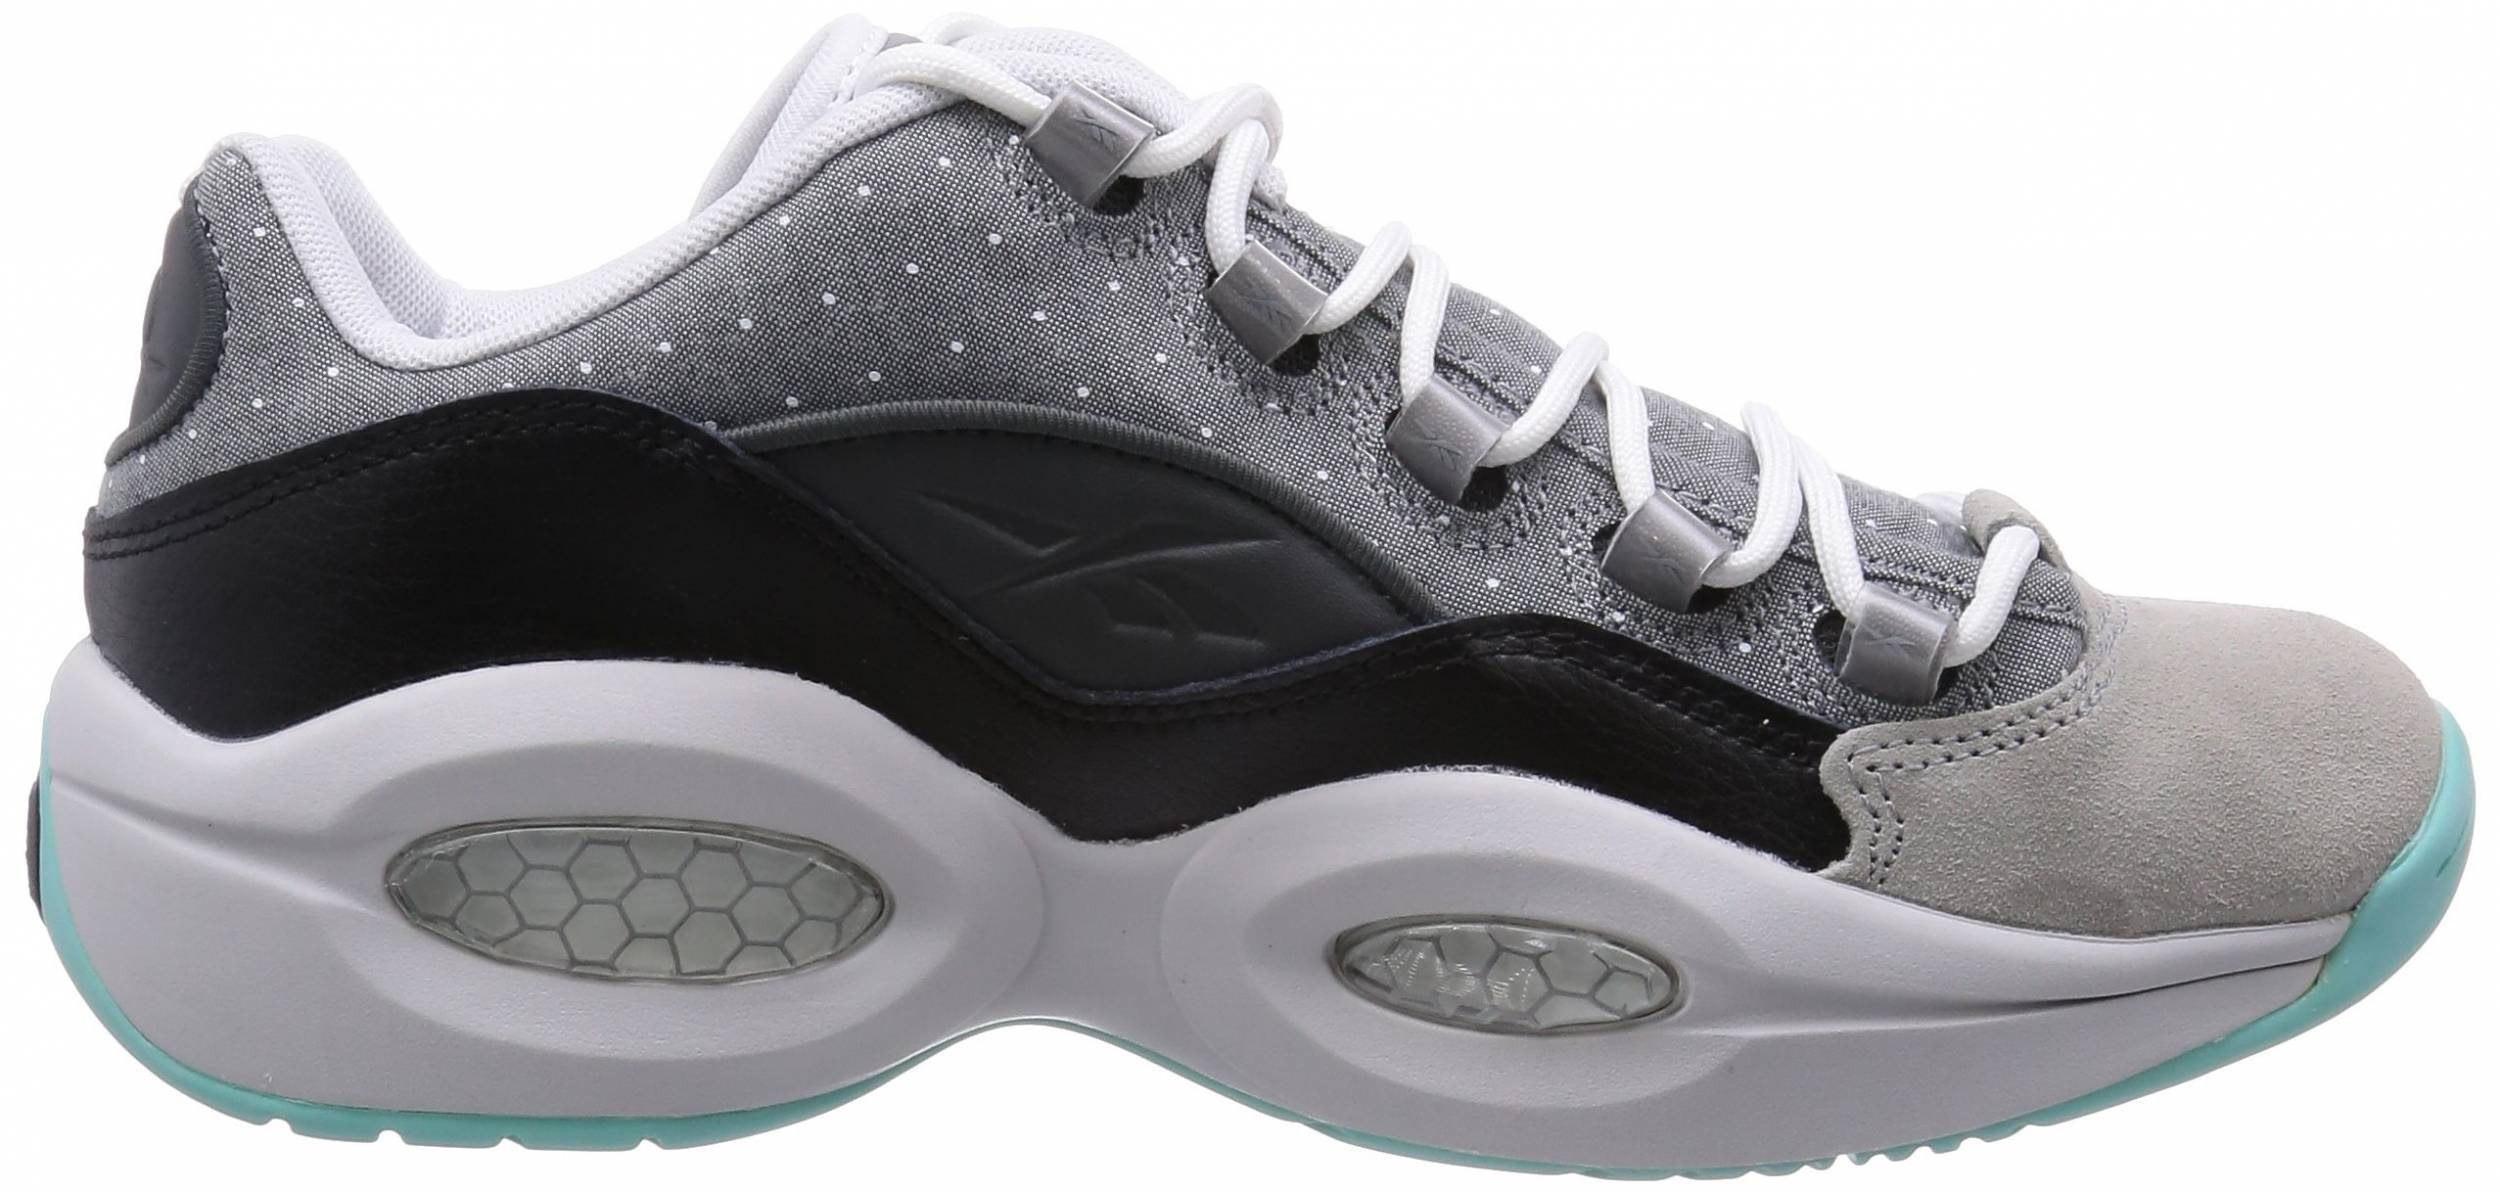 $120 + Review of Reebok Question Low